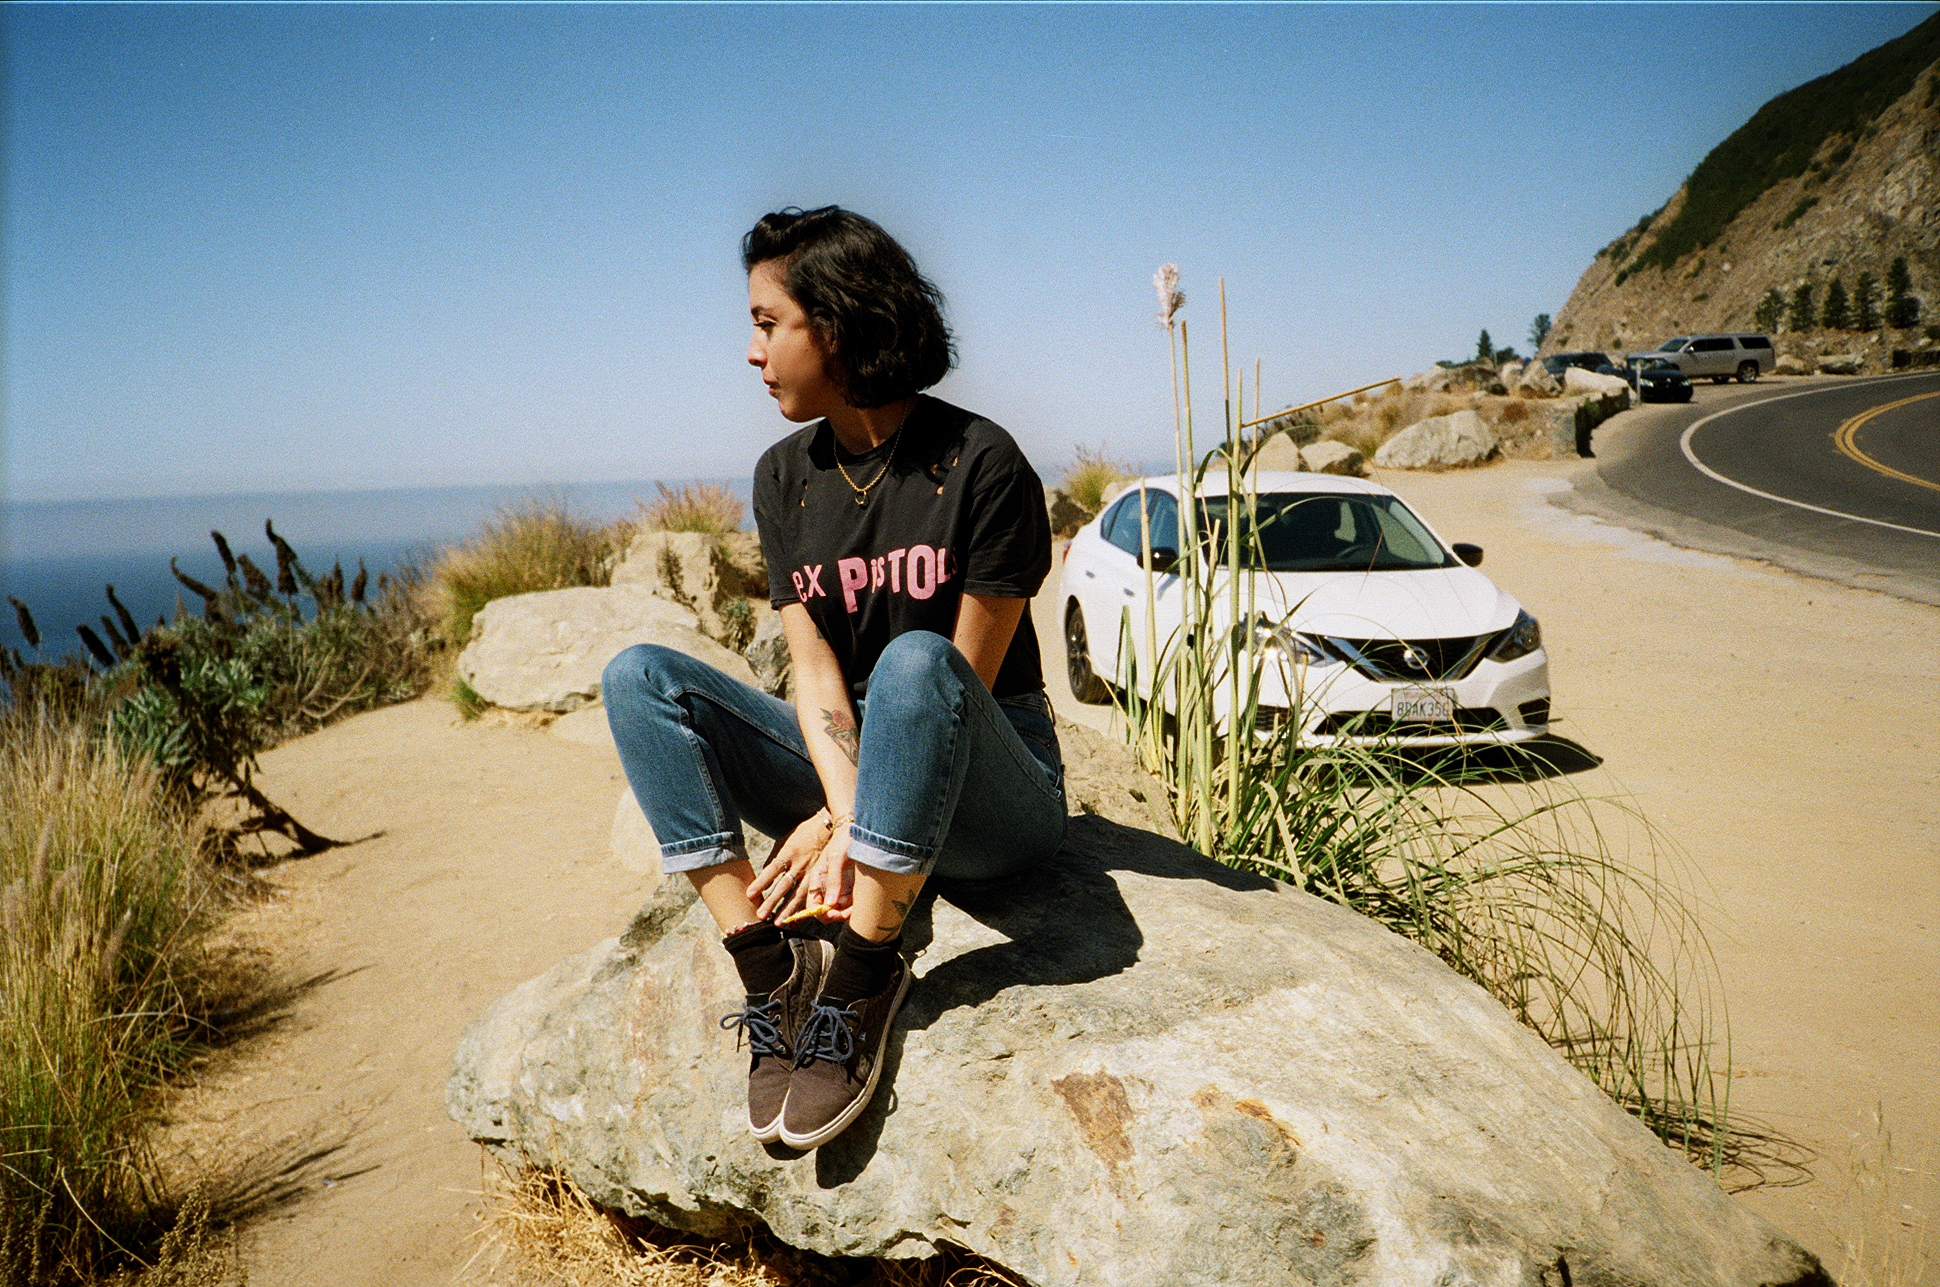 California highway one roadtrip 35mm film diary by London based photographer Ailera Stone